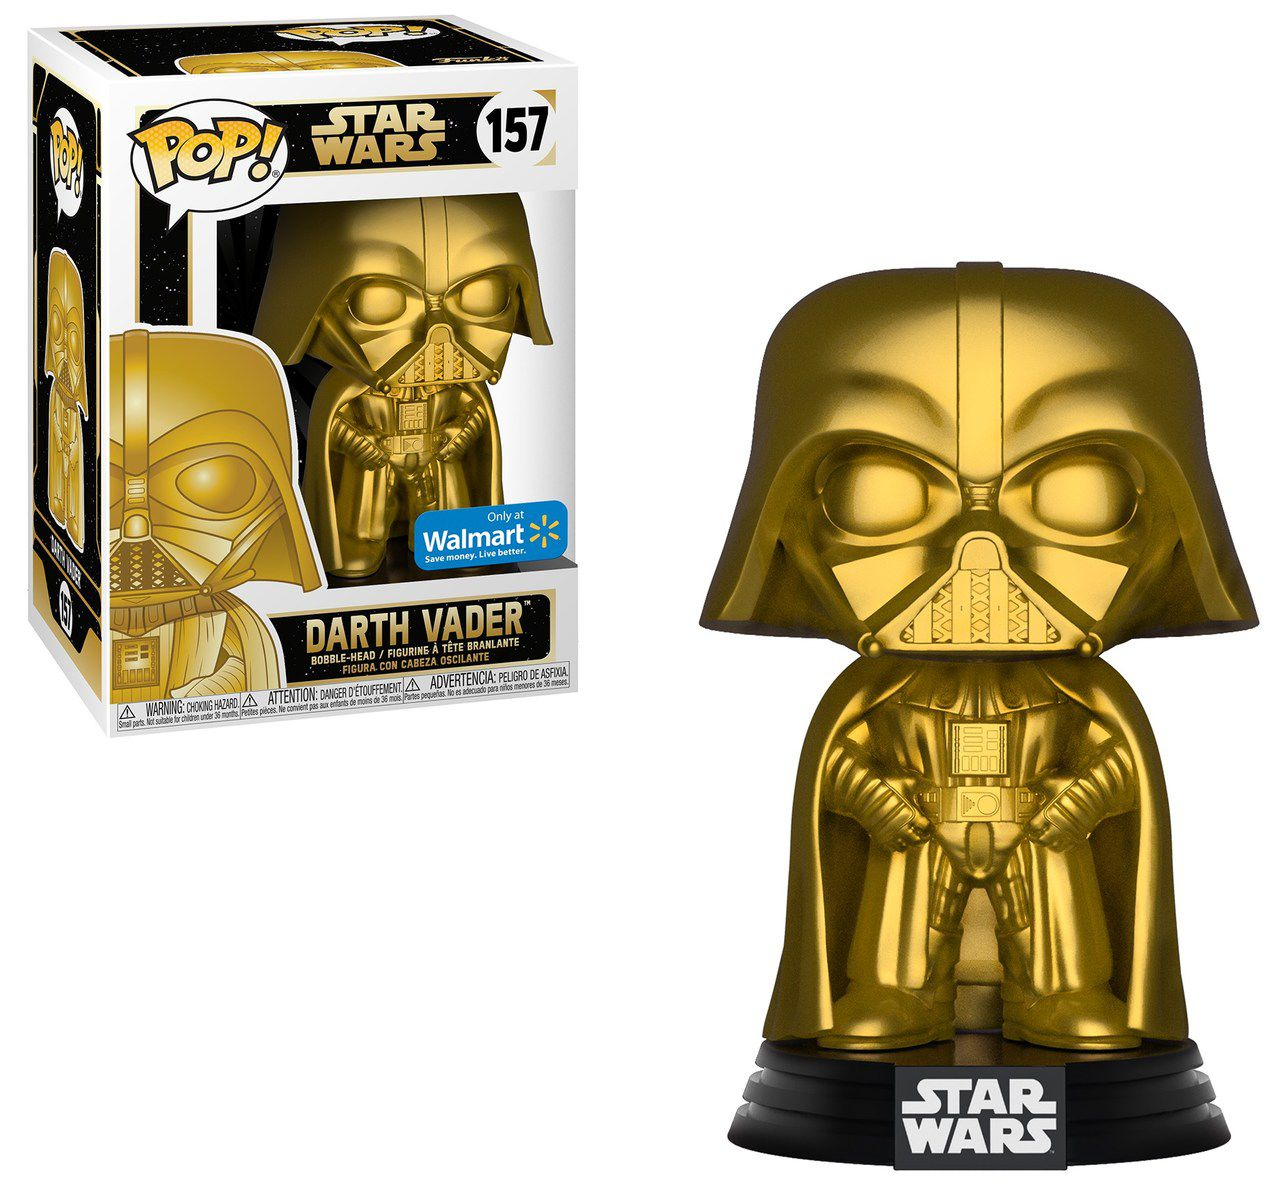 Pop! Darth Vader (Gold Metallic): Star Wars (Exclusivo) #157 - Funko (Apenas Venda Online)